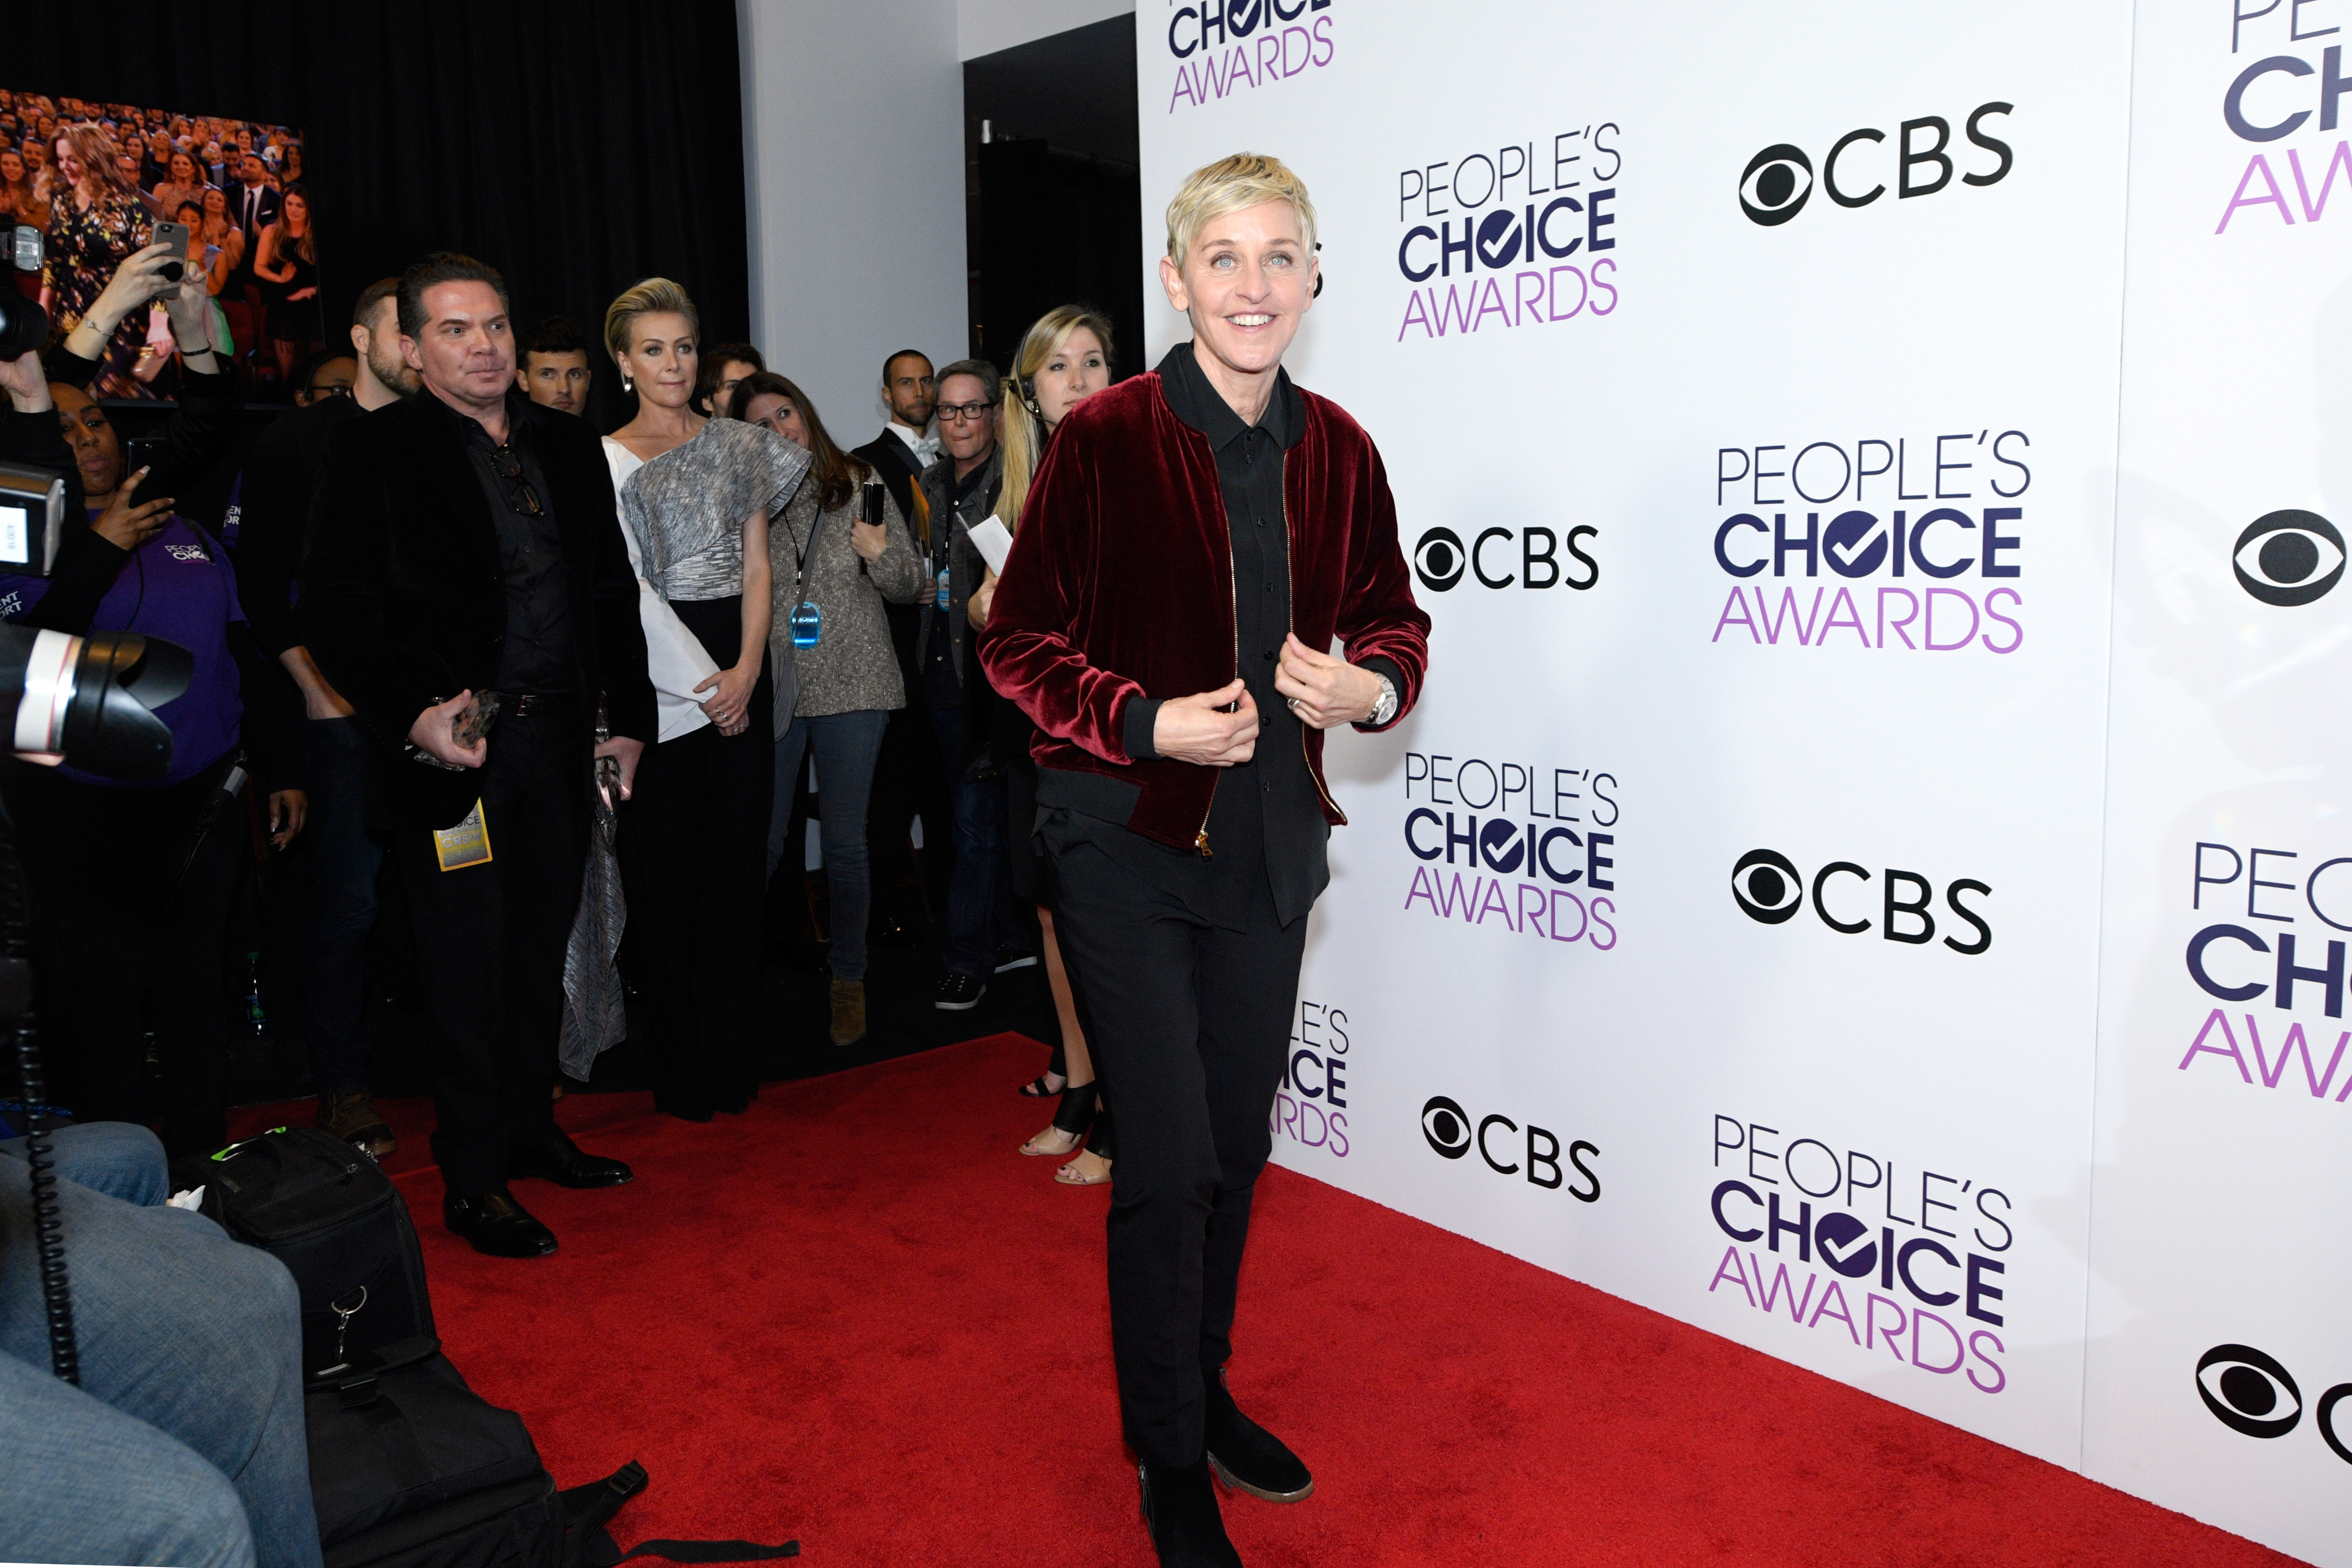 TV Personality Ellen Degeneres, poses in the press room during the People's Choice Awards 2017 at Microsoft Theater on January 18, 2017 in Los Angeles, California. (Photo by Kevork Djansezian/Getty Images)